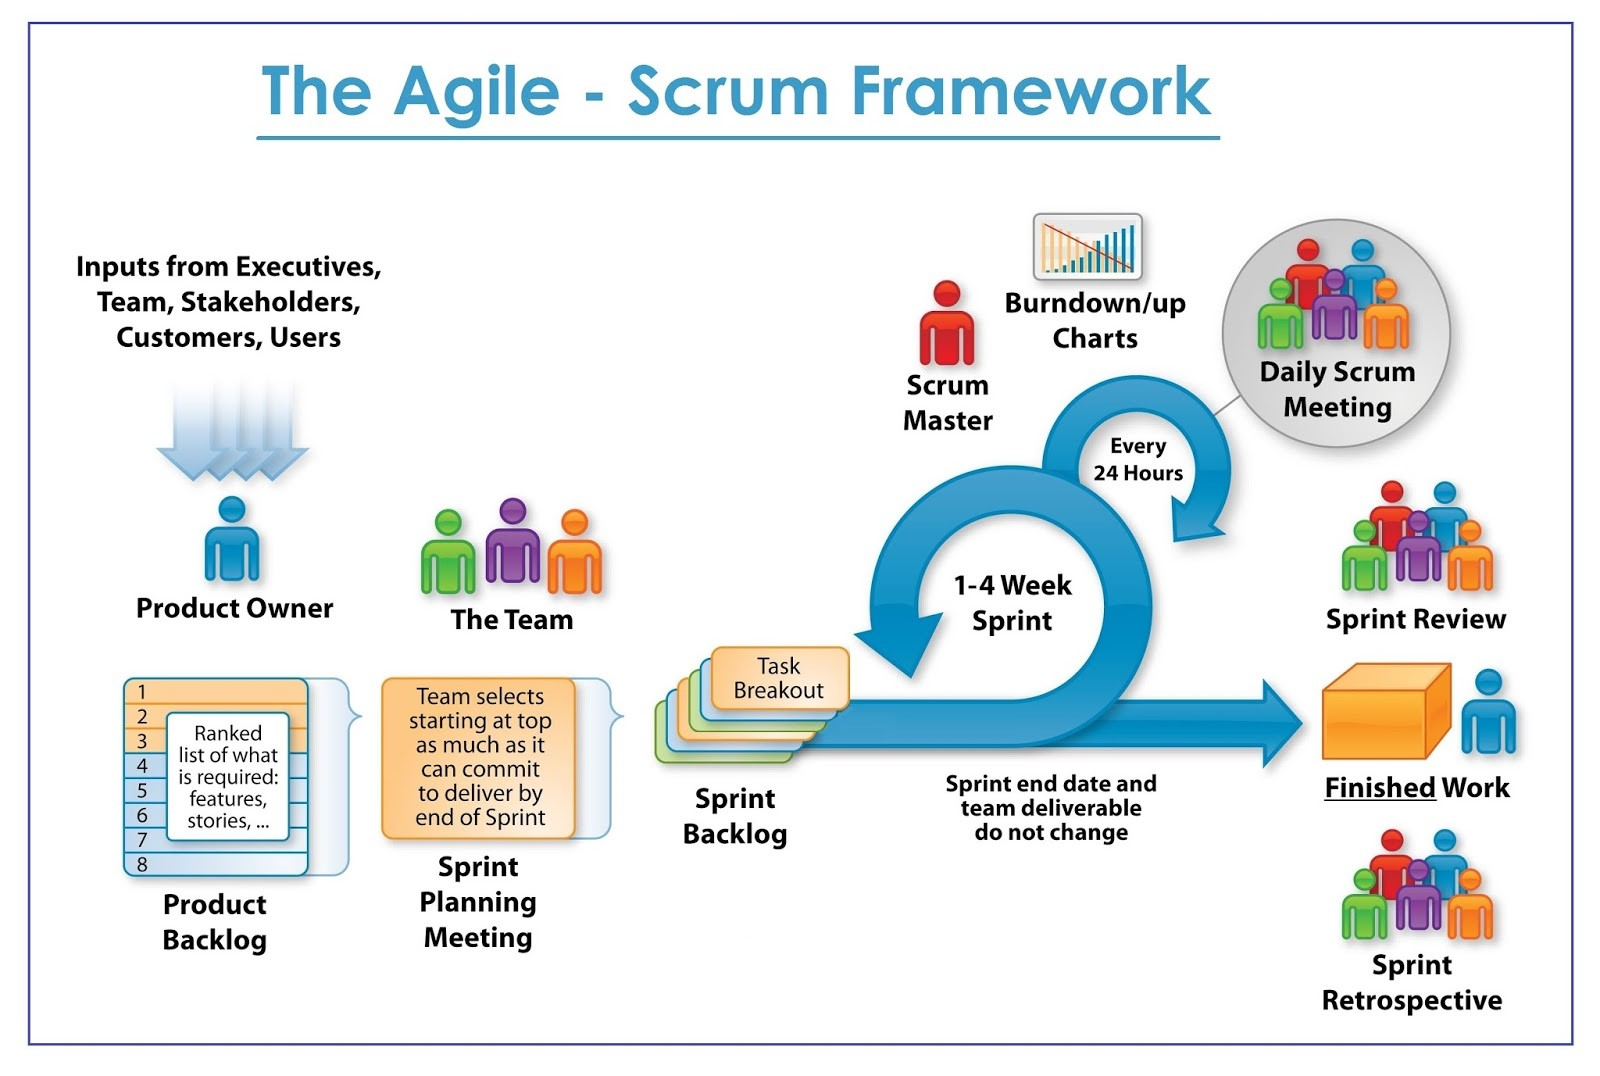 a scrum process is distinguished from other agile processes by specific concepts and practices divided into the three categories of roles artifacts and